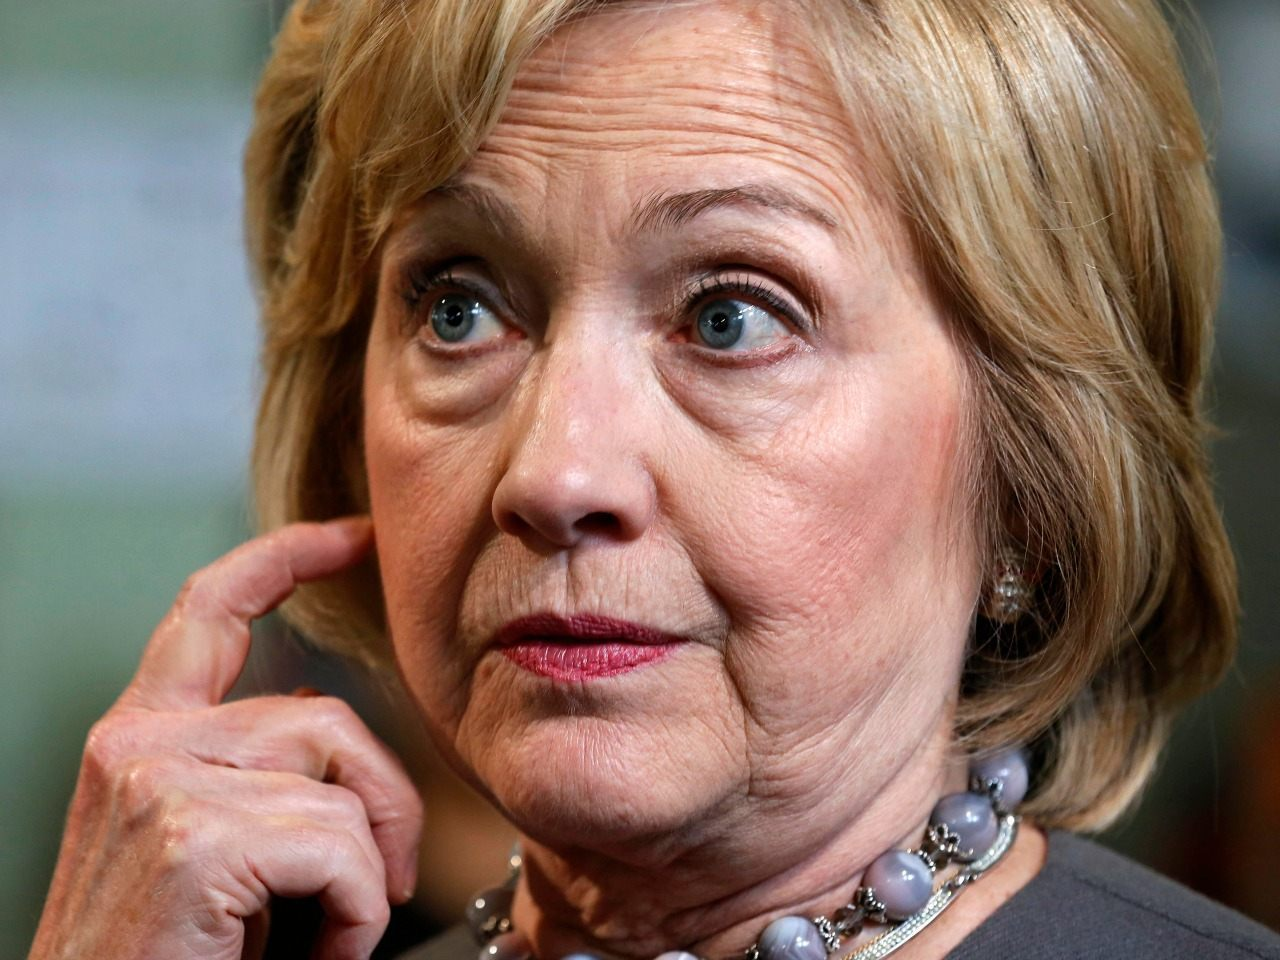 ... Can't Find Emails of Hillary Clinton's IT Director - Breitbart